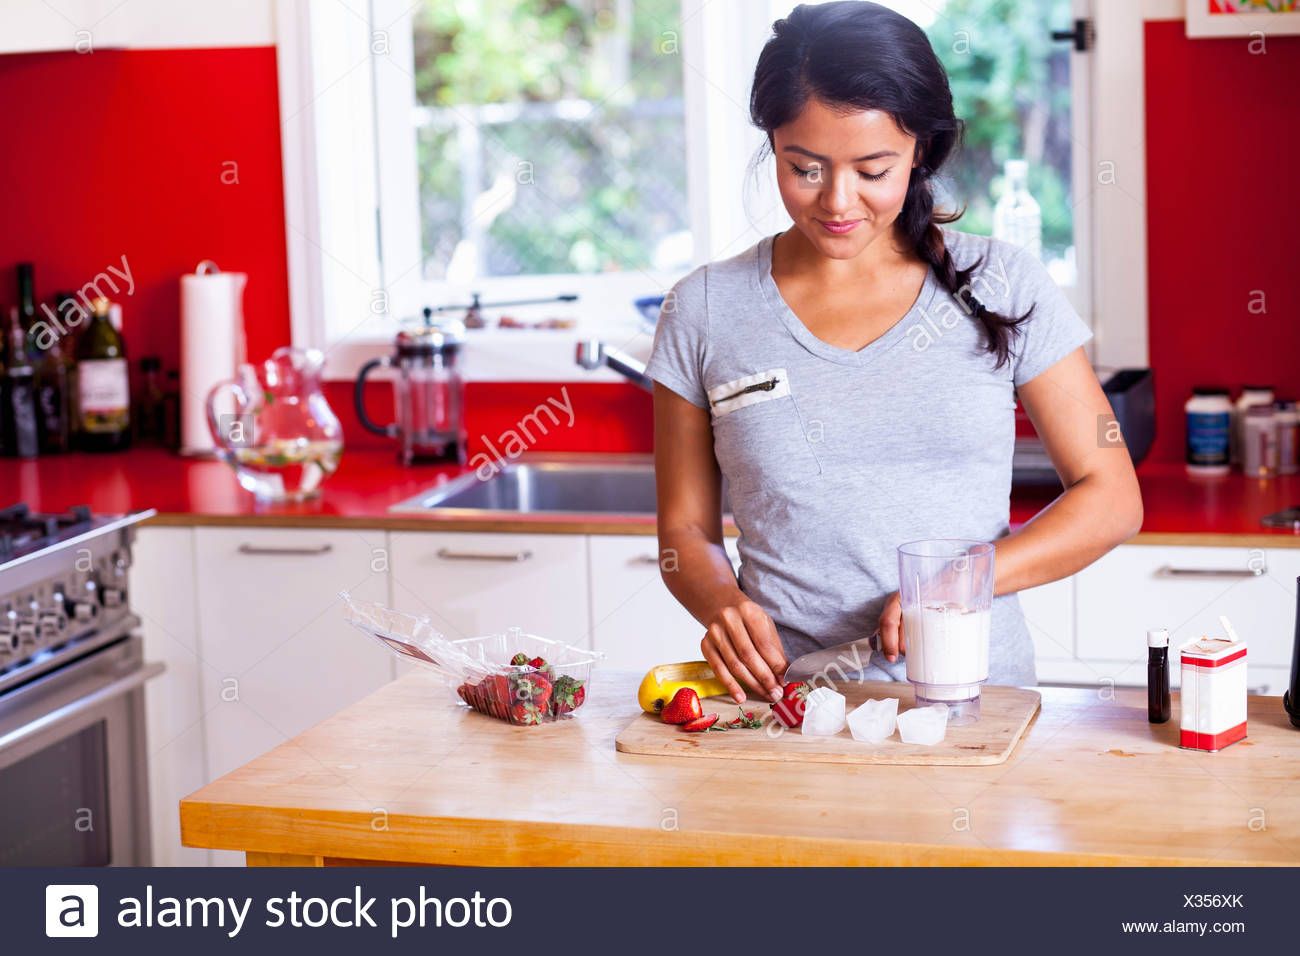 Young woman slicing strawberry in kitchen - Stock Image